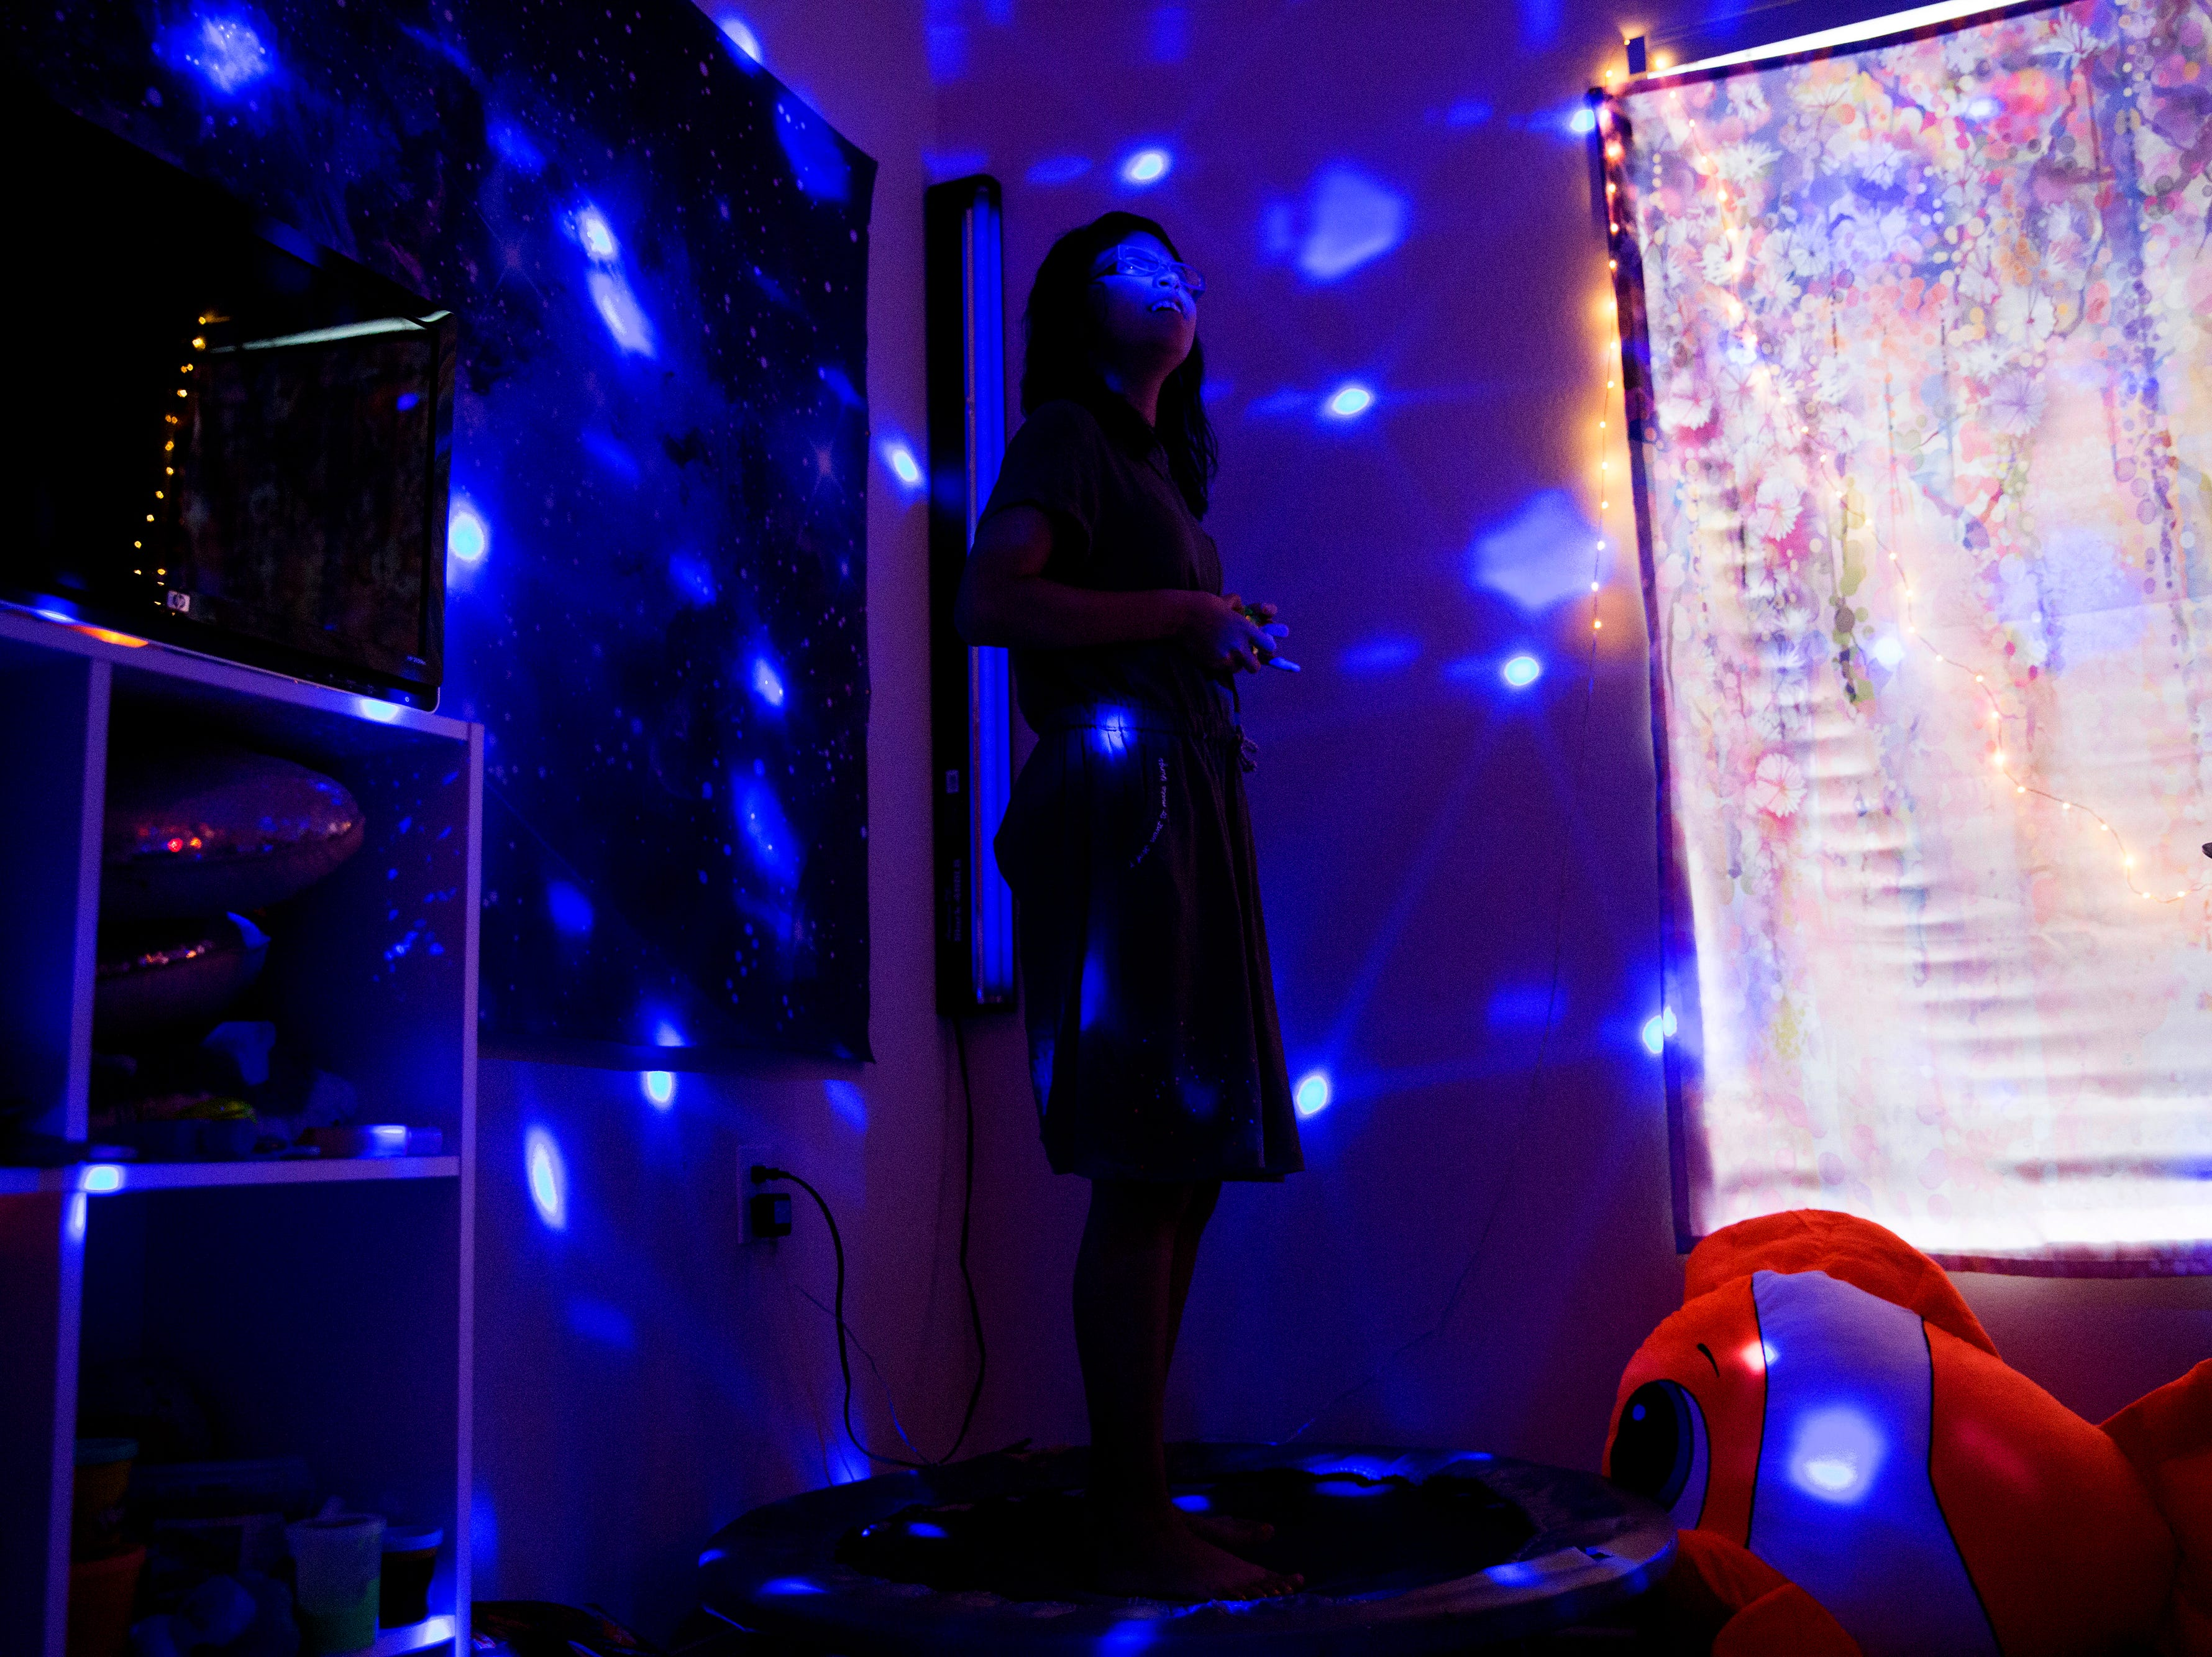 """Camila Chang, 11, listens to music in her """"sensory room"""" in her North Naples home on Tuesday, Aug. 14, 2018. Camila was diagnosed with autism when she was two and a half years old and goes to her """"sensory room"""" to immerse herself in music. Because of Camila's love for music and the lack of services for kids with autism in Southwest Florida, Camila's mother Marcela Guimoye started a nonprofit called EndlessBrain. EndlessBrain provides music opportunities for kids with special needs. """"My expectations for EndlessBrain is to make Camila as happy as possible and give kids like her the same opportunity,"""" Guimoye says."""